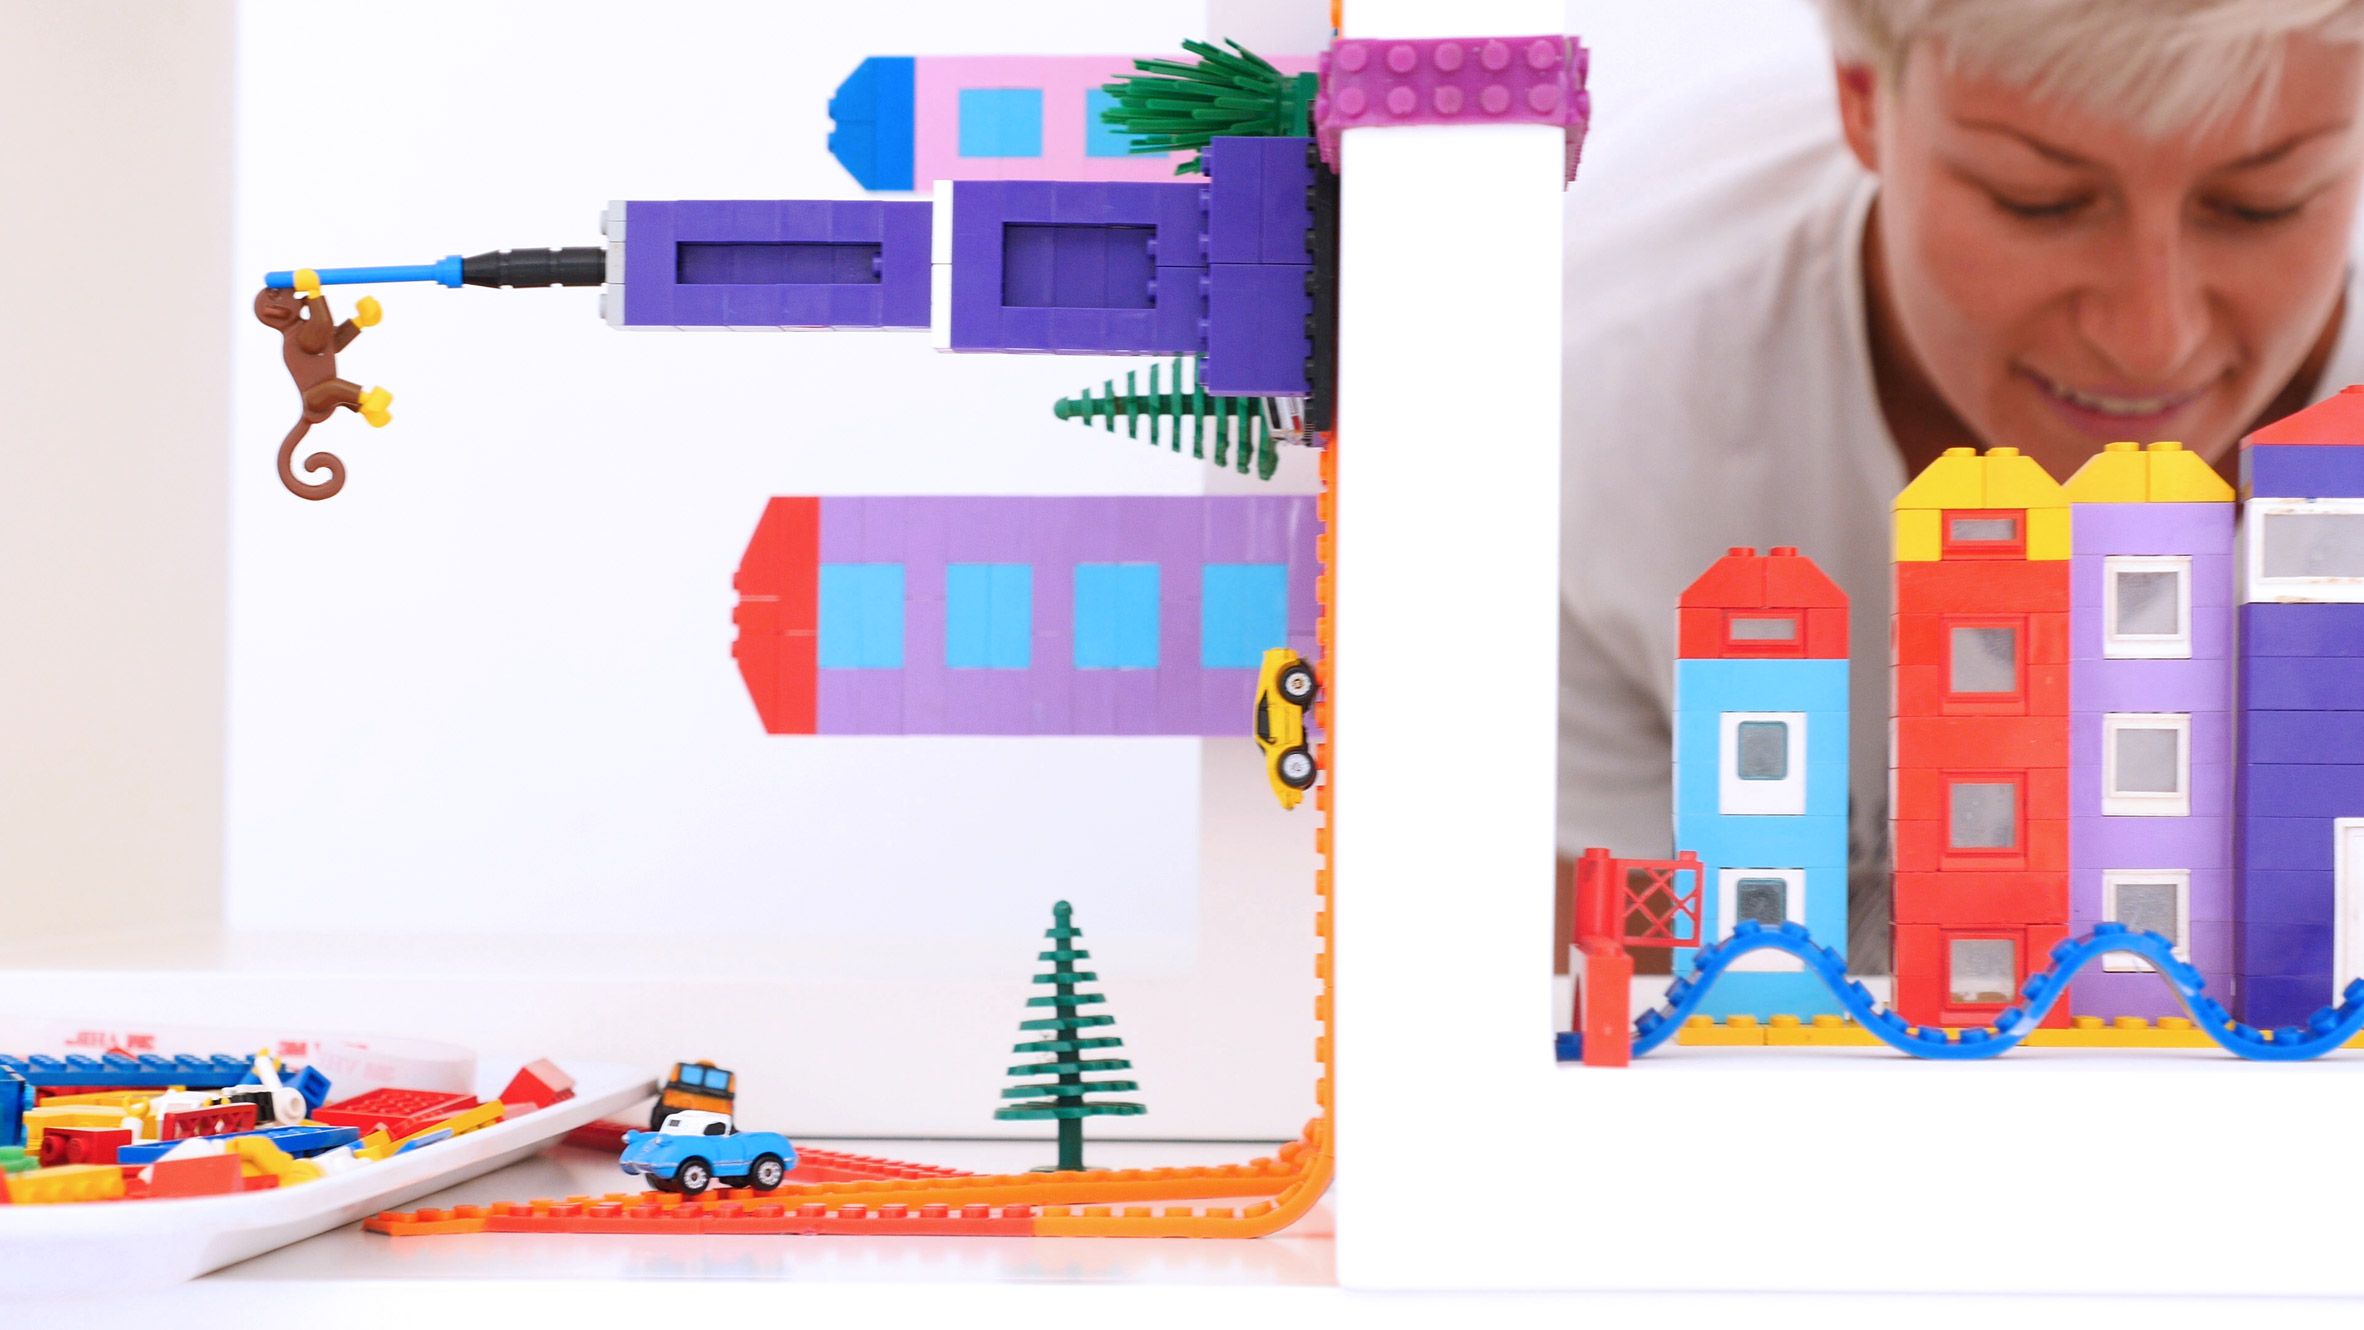 Nimuno Loops is a reusable tape that turns any surface into a base for Lego